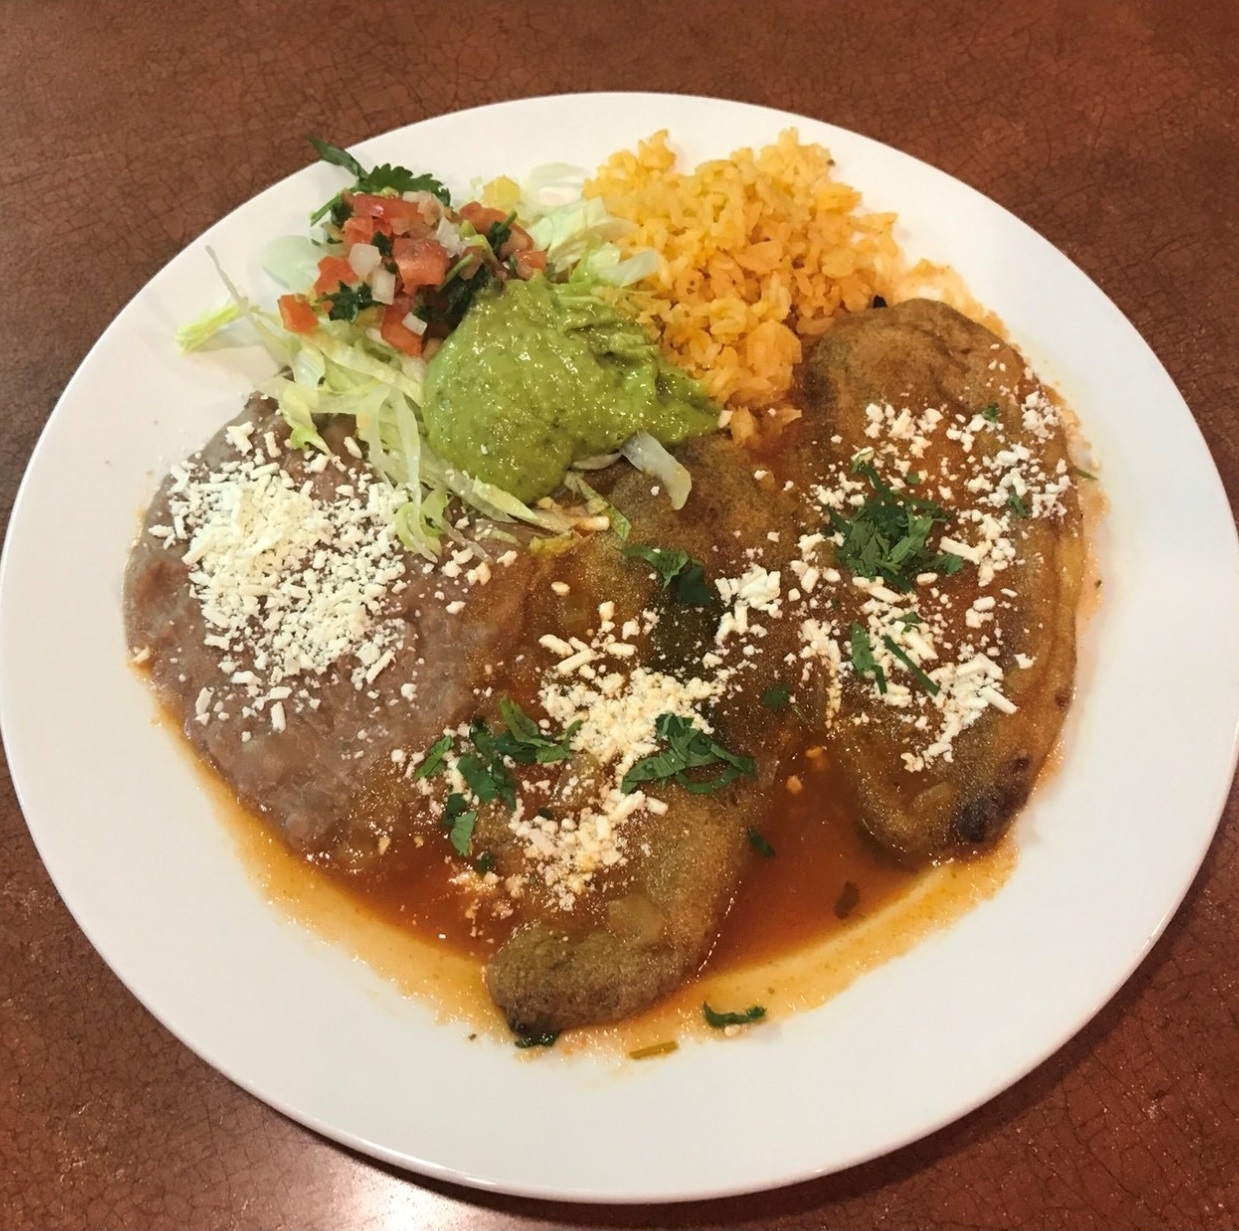 Our Mexican Restaurant Serves The Most Scrumptious Selection Of Dishes Including Carne Asada En Mole Sopes And Chile Rellenos To Name A Few